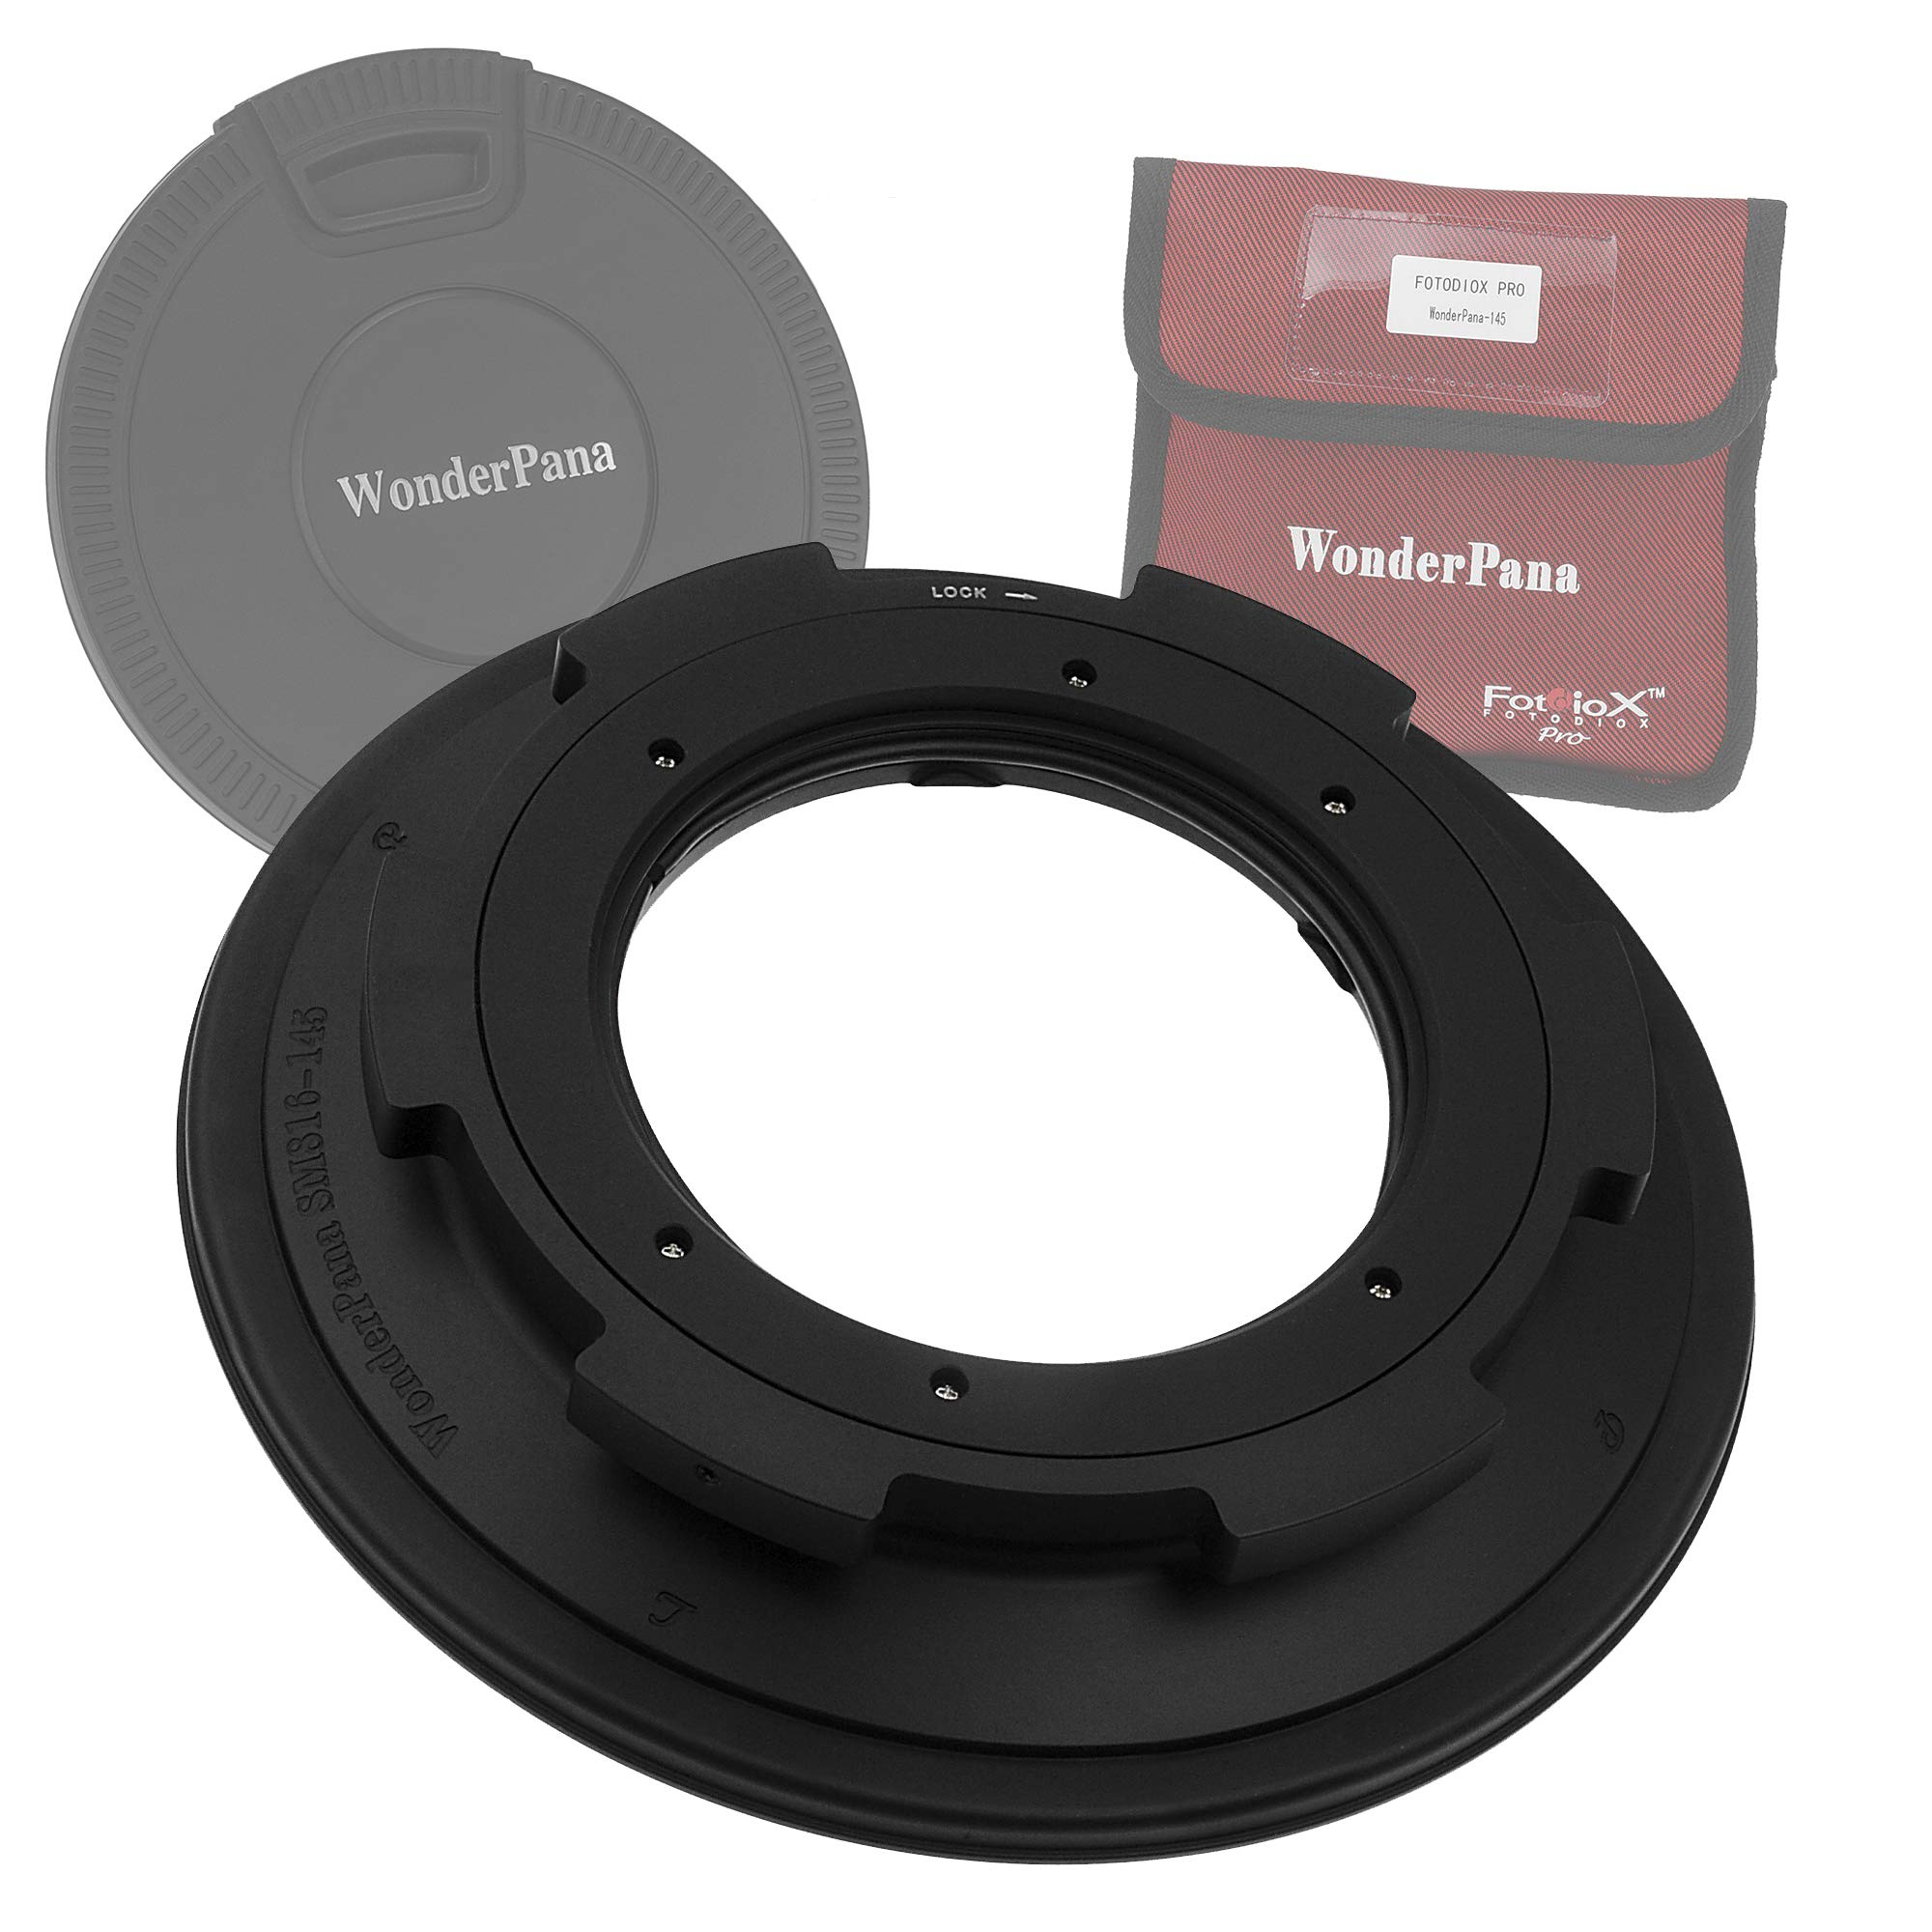 WonderPana Classic 145mm Filter Holder for Sigma 8-16mm f/4.5-5.6 DC HSM Ultra-Wide Zoom Lens by Fotodiox